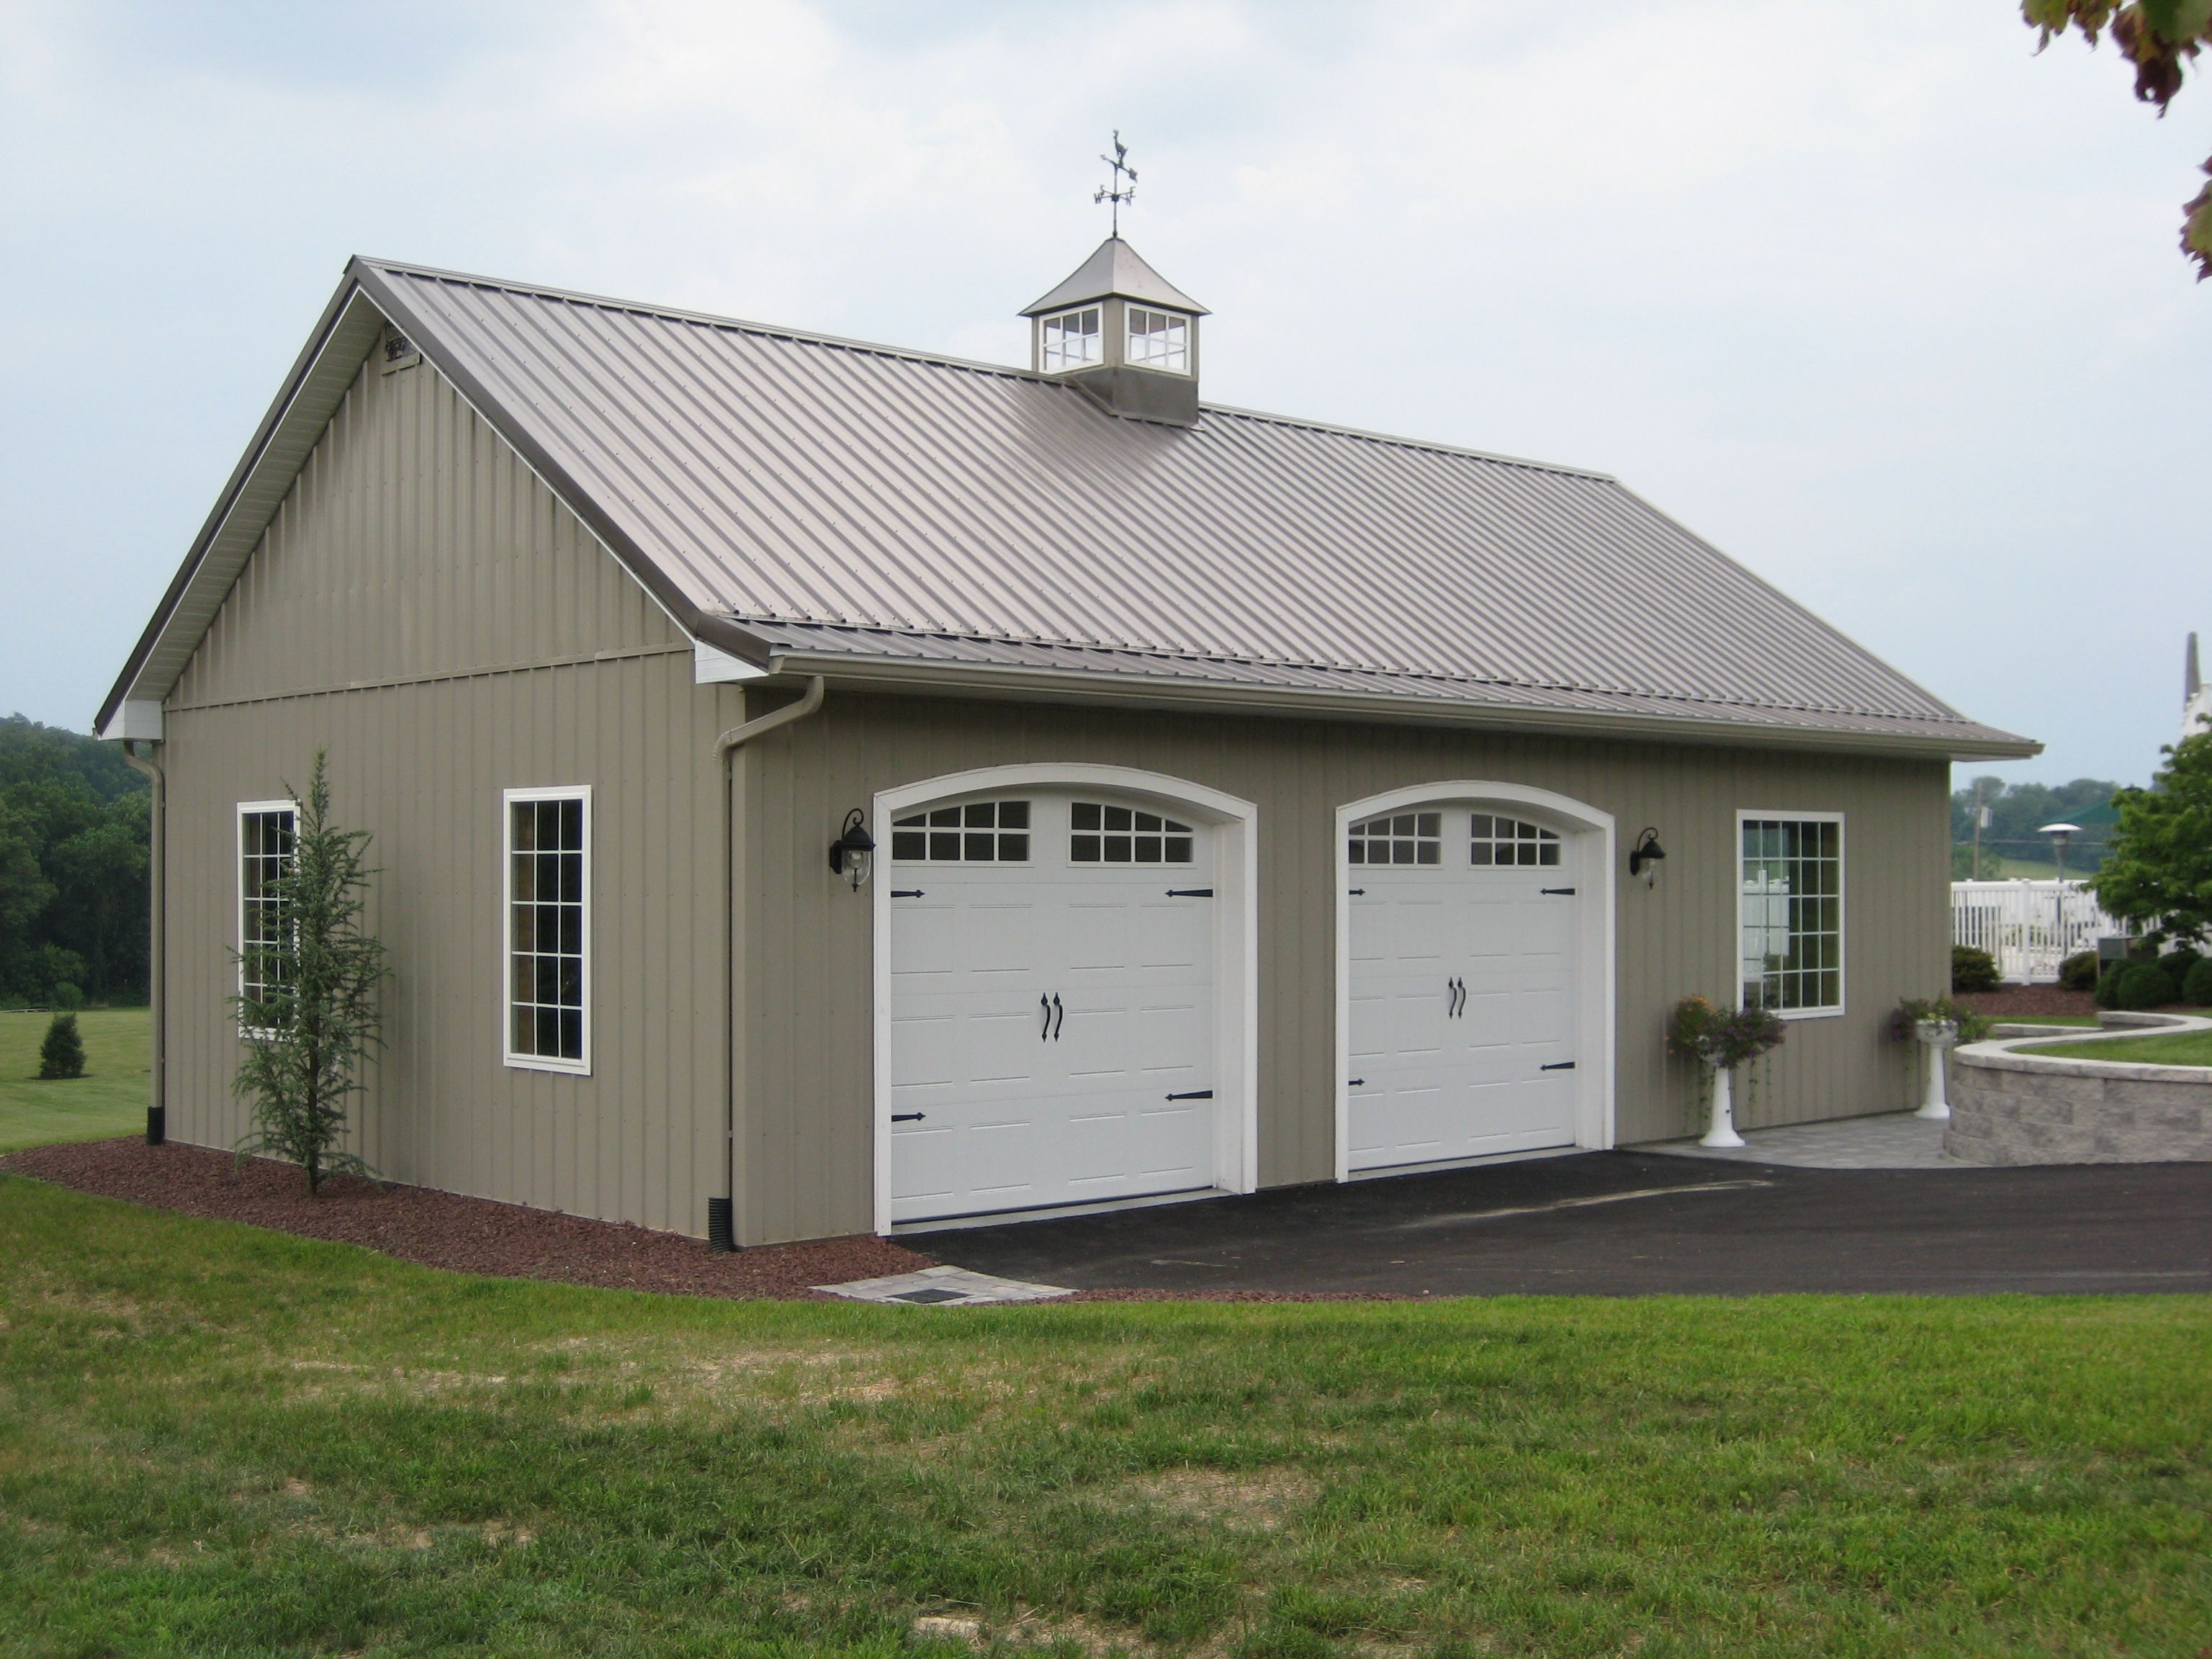 Best 25 pole barn garage ideas on pinterest pole barns House pole